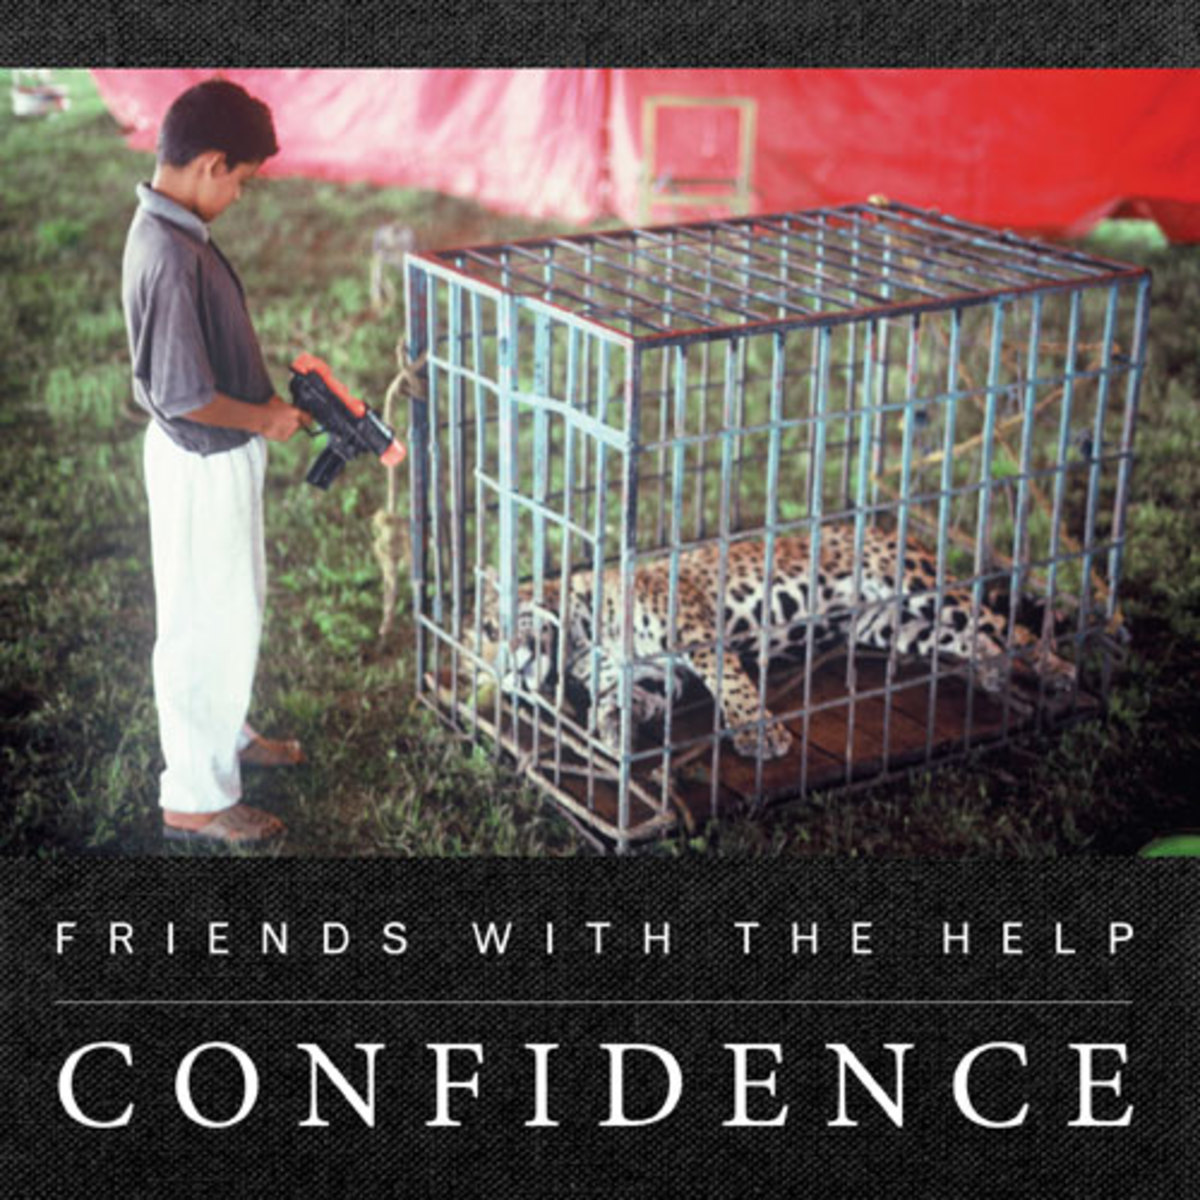 friendshelp-confidence.jpg